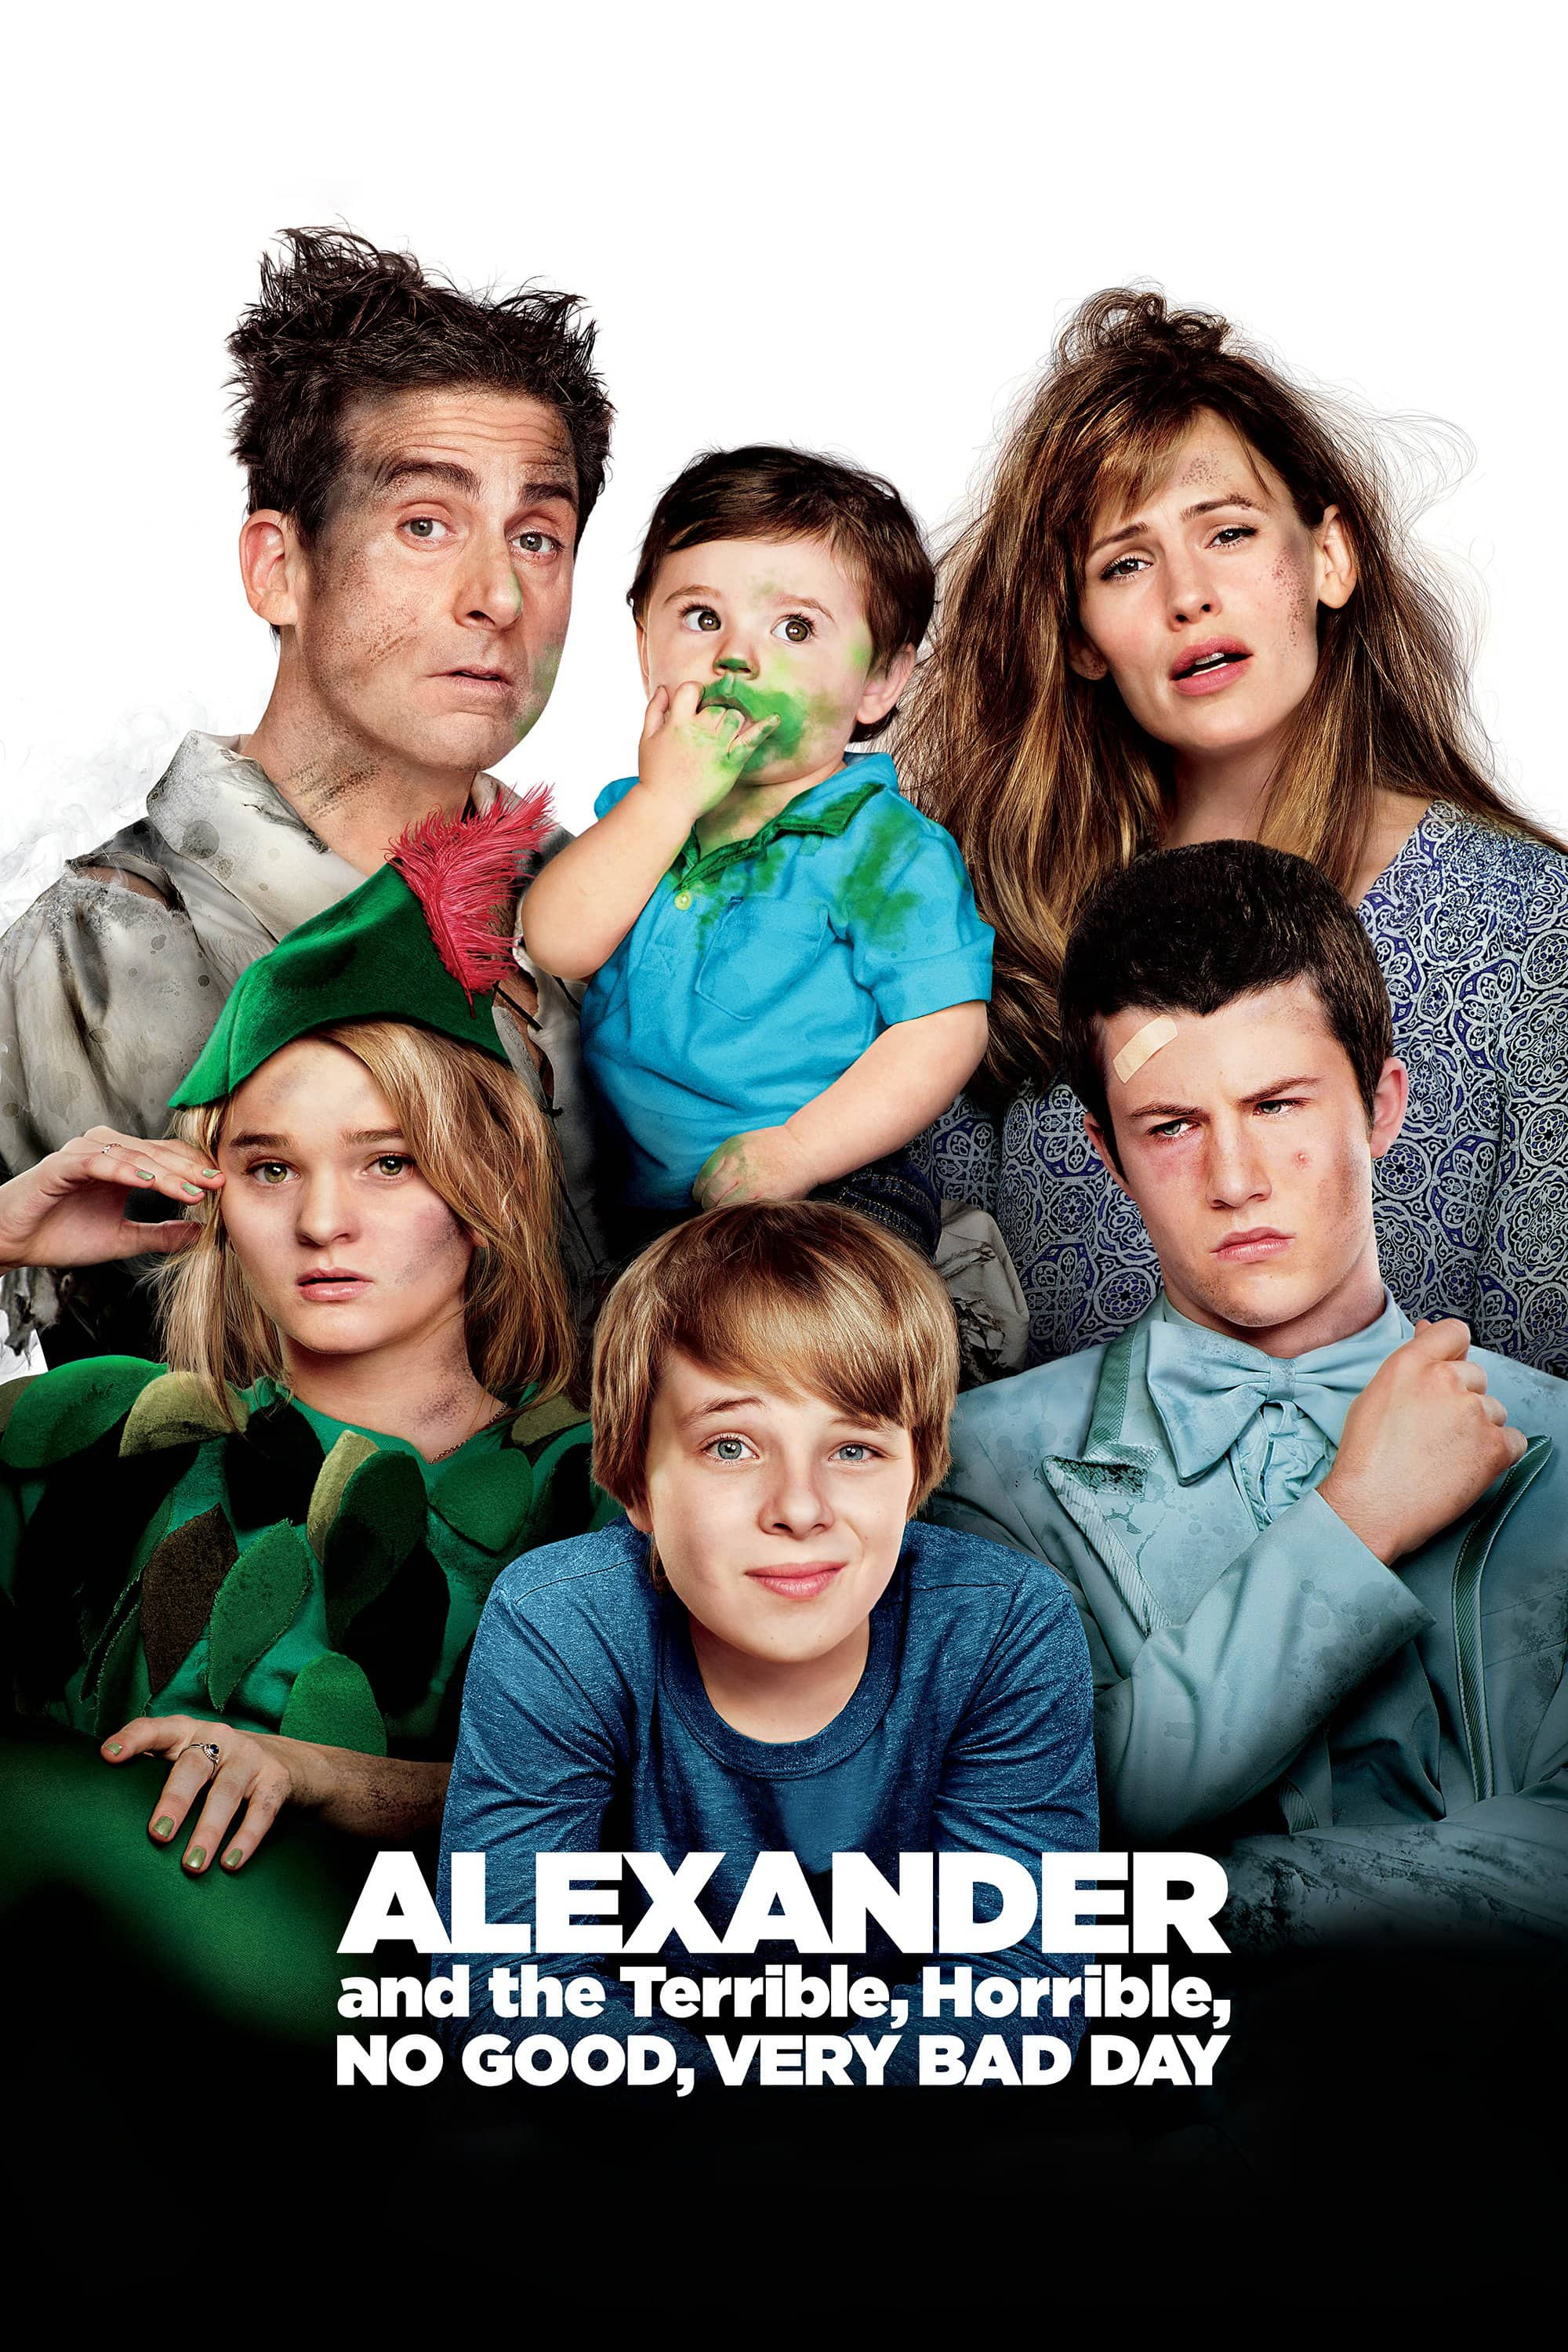 Alexander and the Terrible, Horrible, No Good, Very Bad Day, 1990